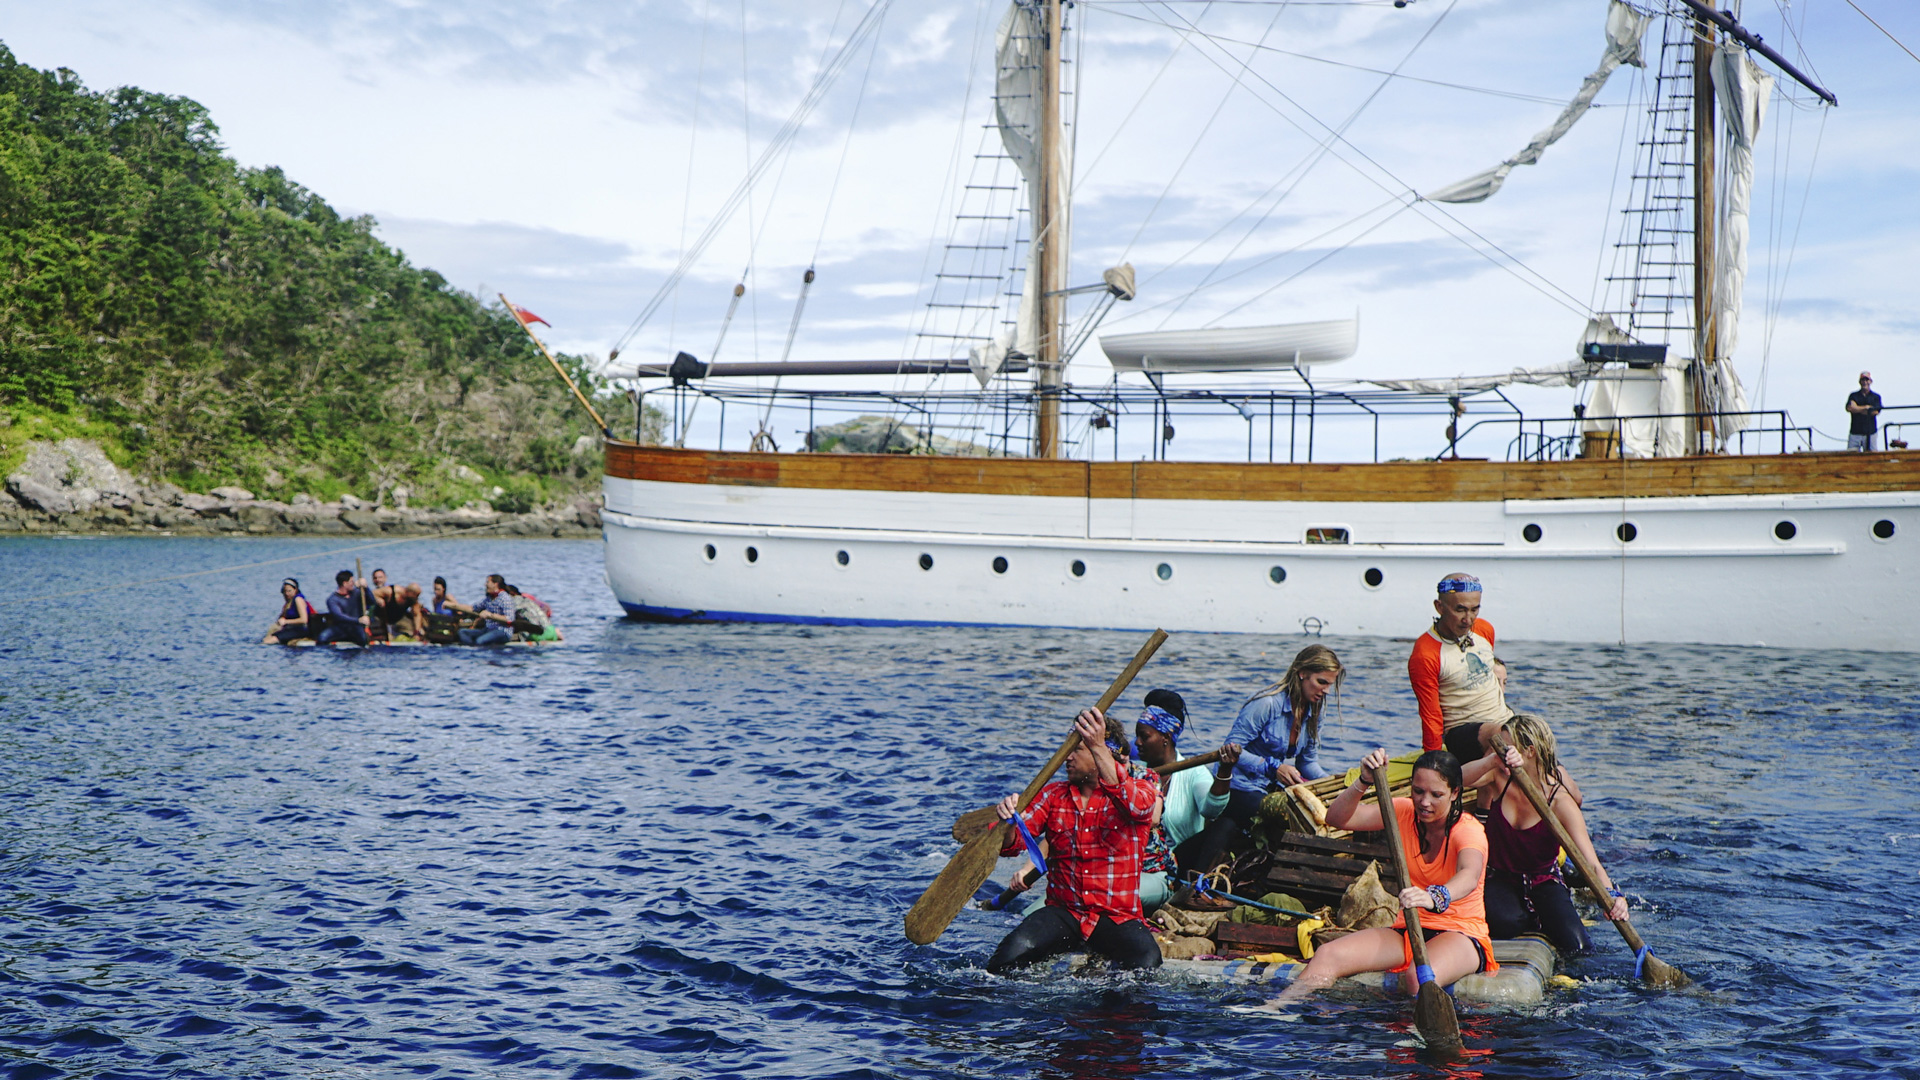 Here are some photos from the season premiere episode of Survivor: Game Changers entitled